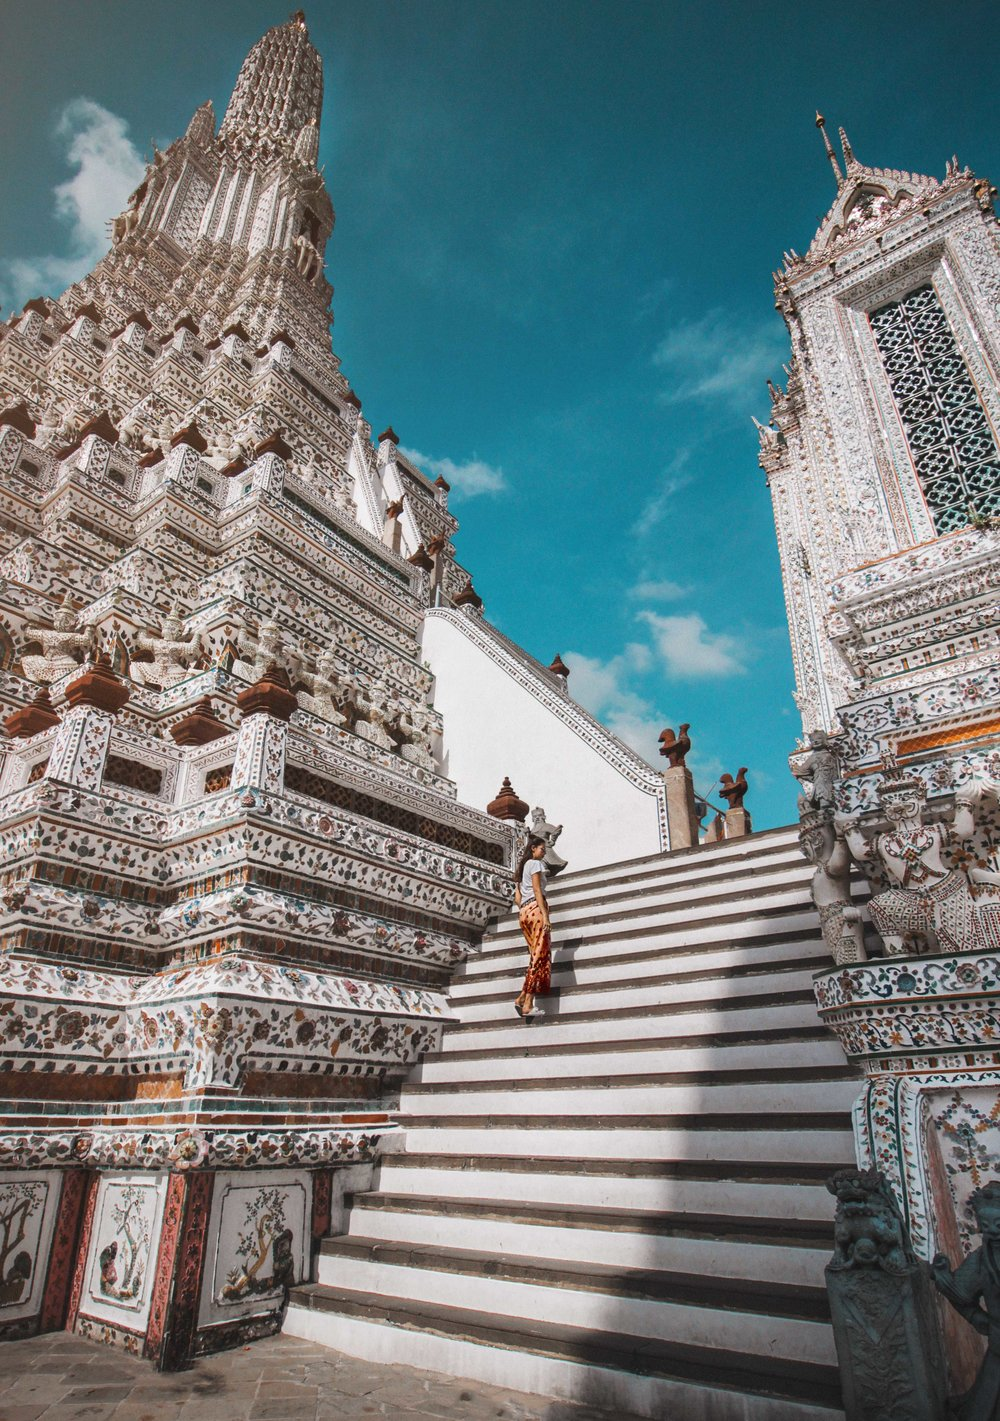 "Wat Arun, Bangkok - Taken with Camera, Tripod and Self-Timer on Burst mode (running up and down the stairs 20x till I get the perfect shot- also part of my "" stay fit, while traveling routine"")"